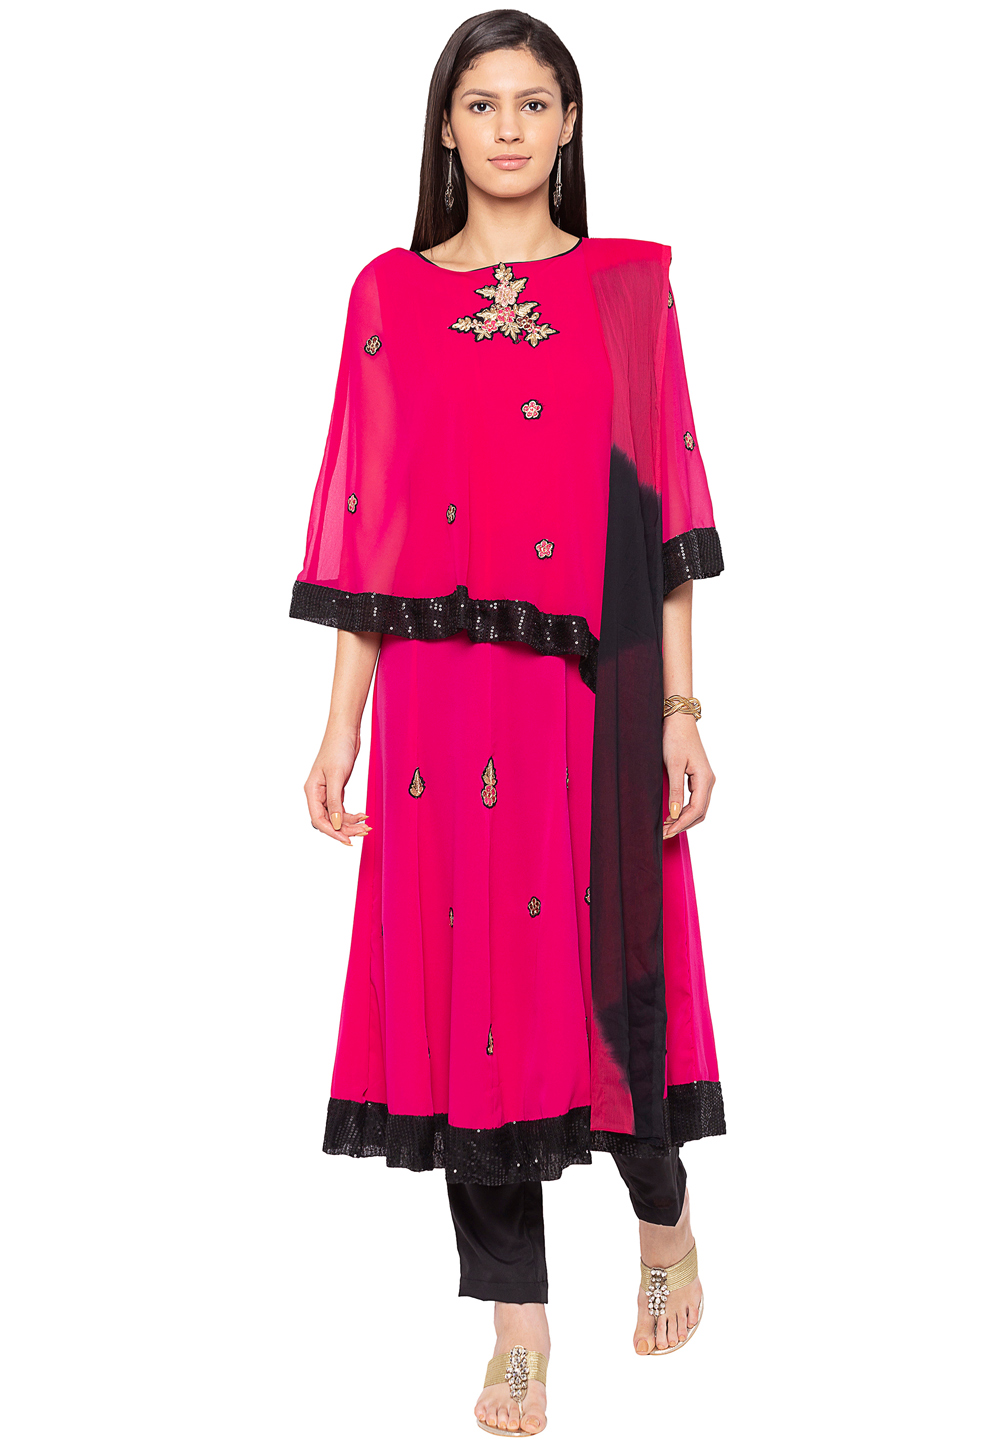 Magenta Georgette Readymade Kameez With Pant 188156